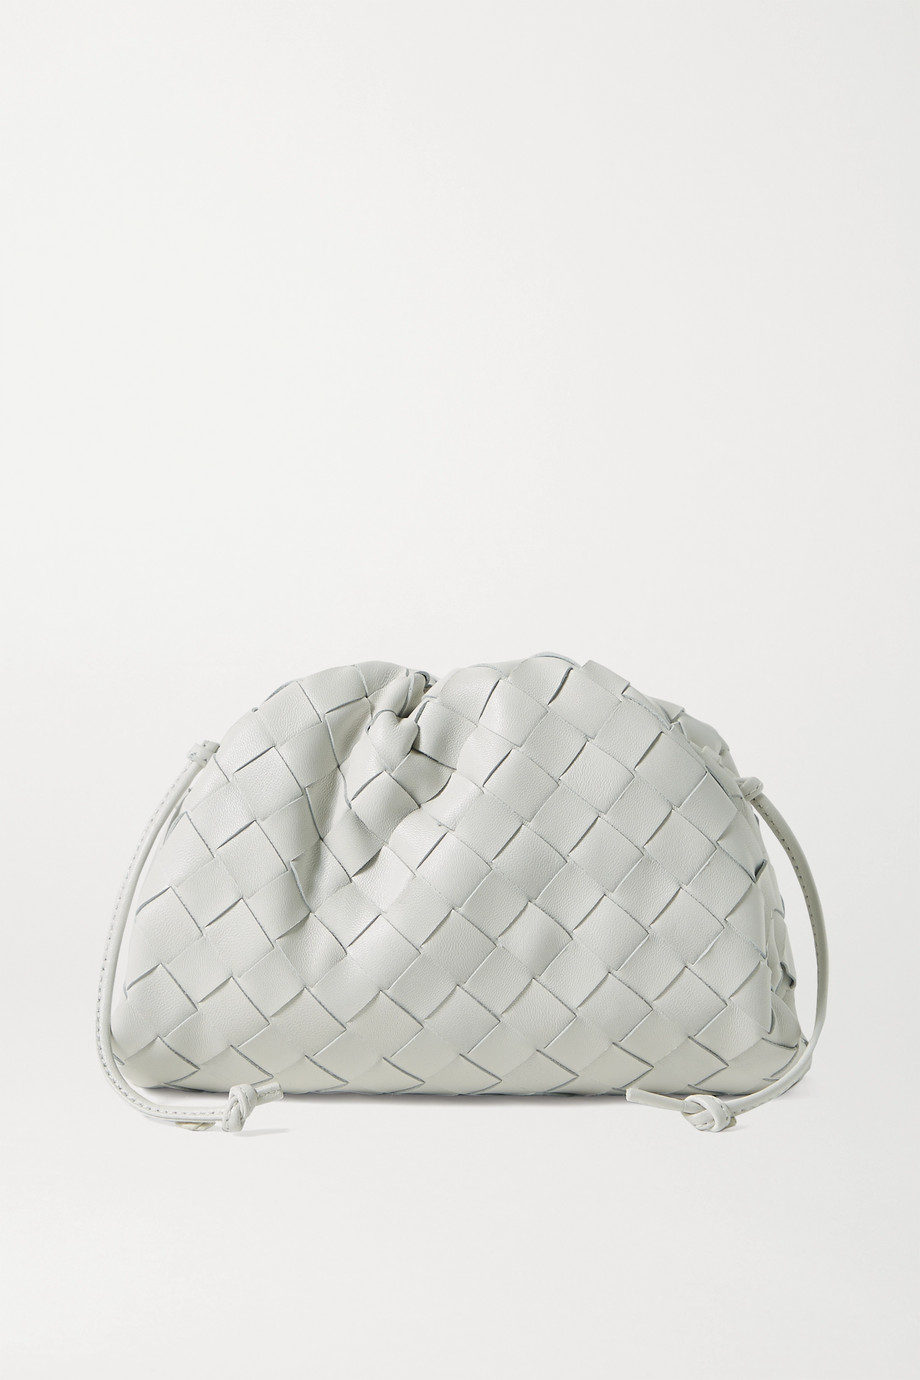 BOTTEGA VENETA The Pouch mini gathered intrecciato leather clutch